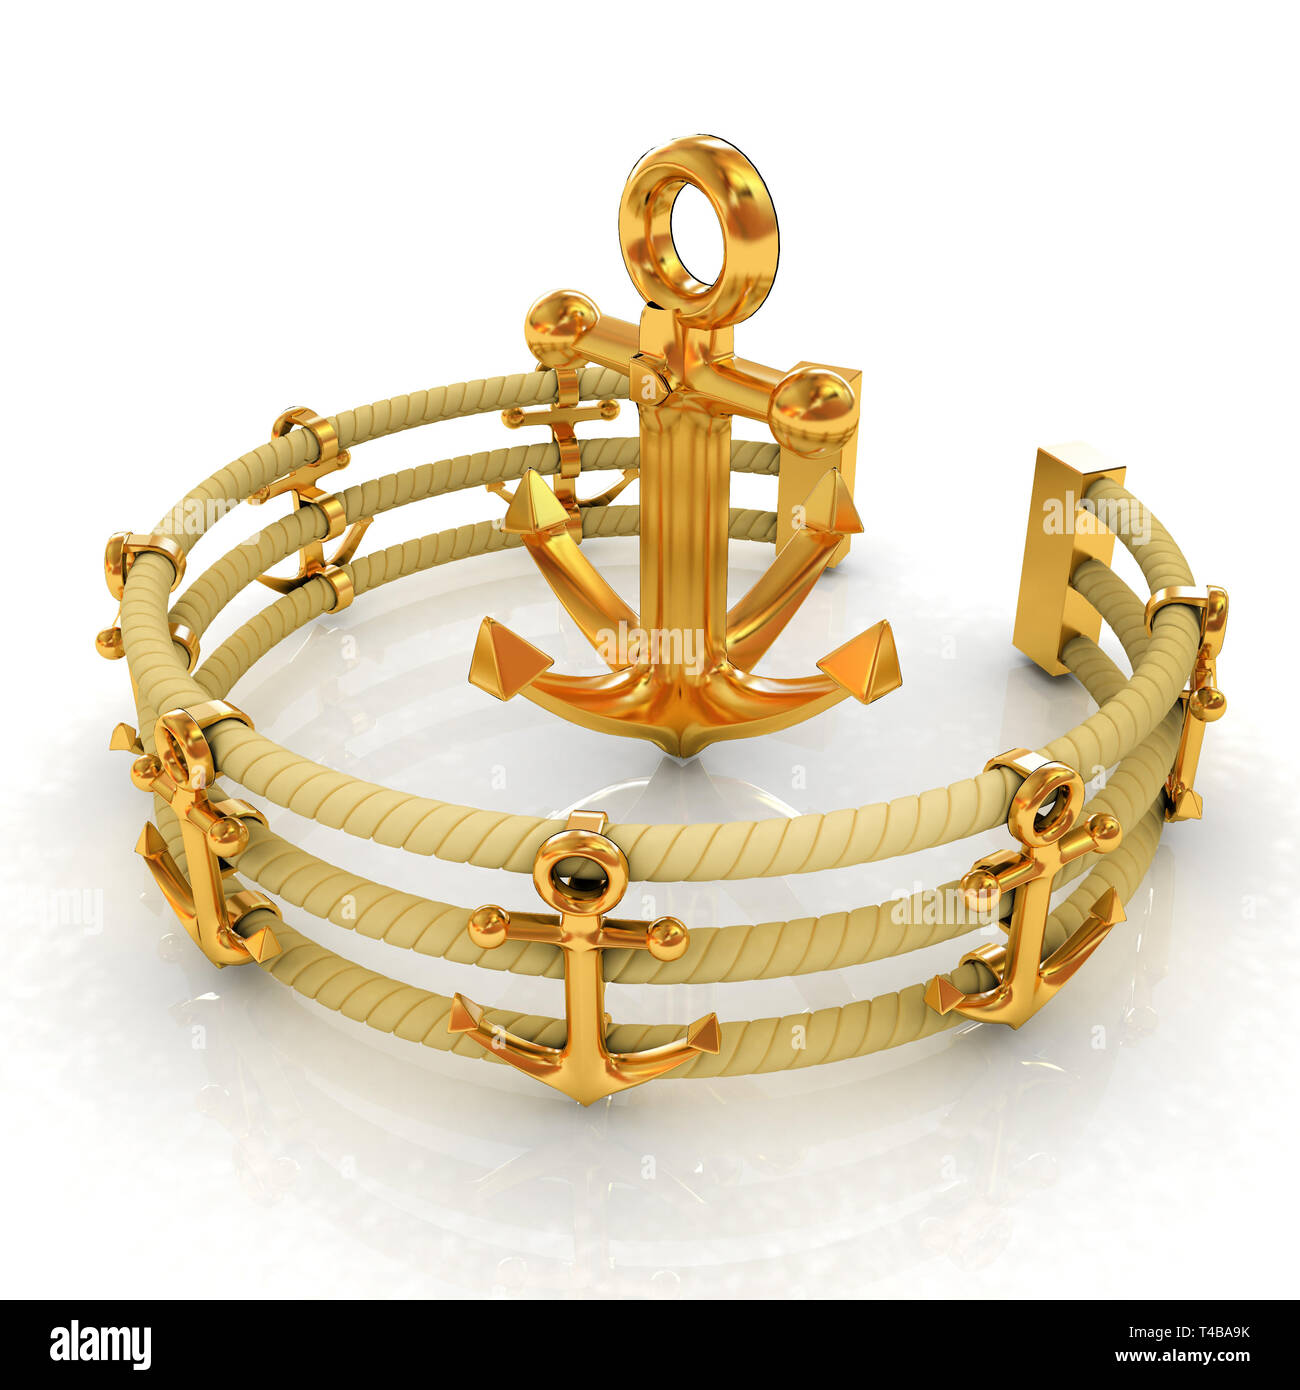 Design fence of anchors on the ropes and anchor in the